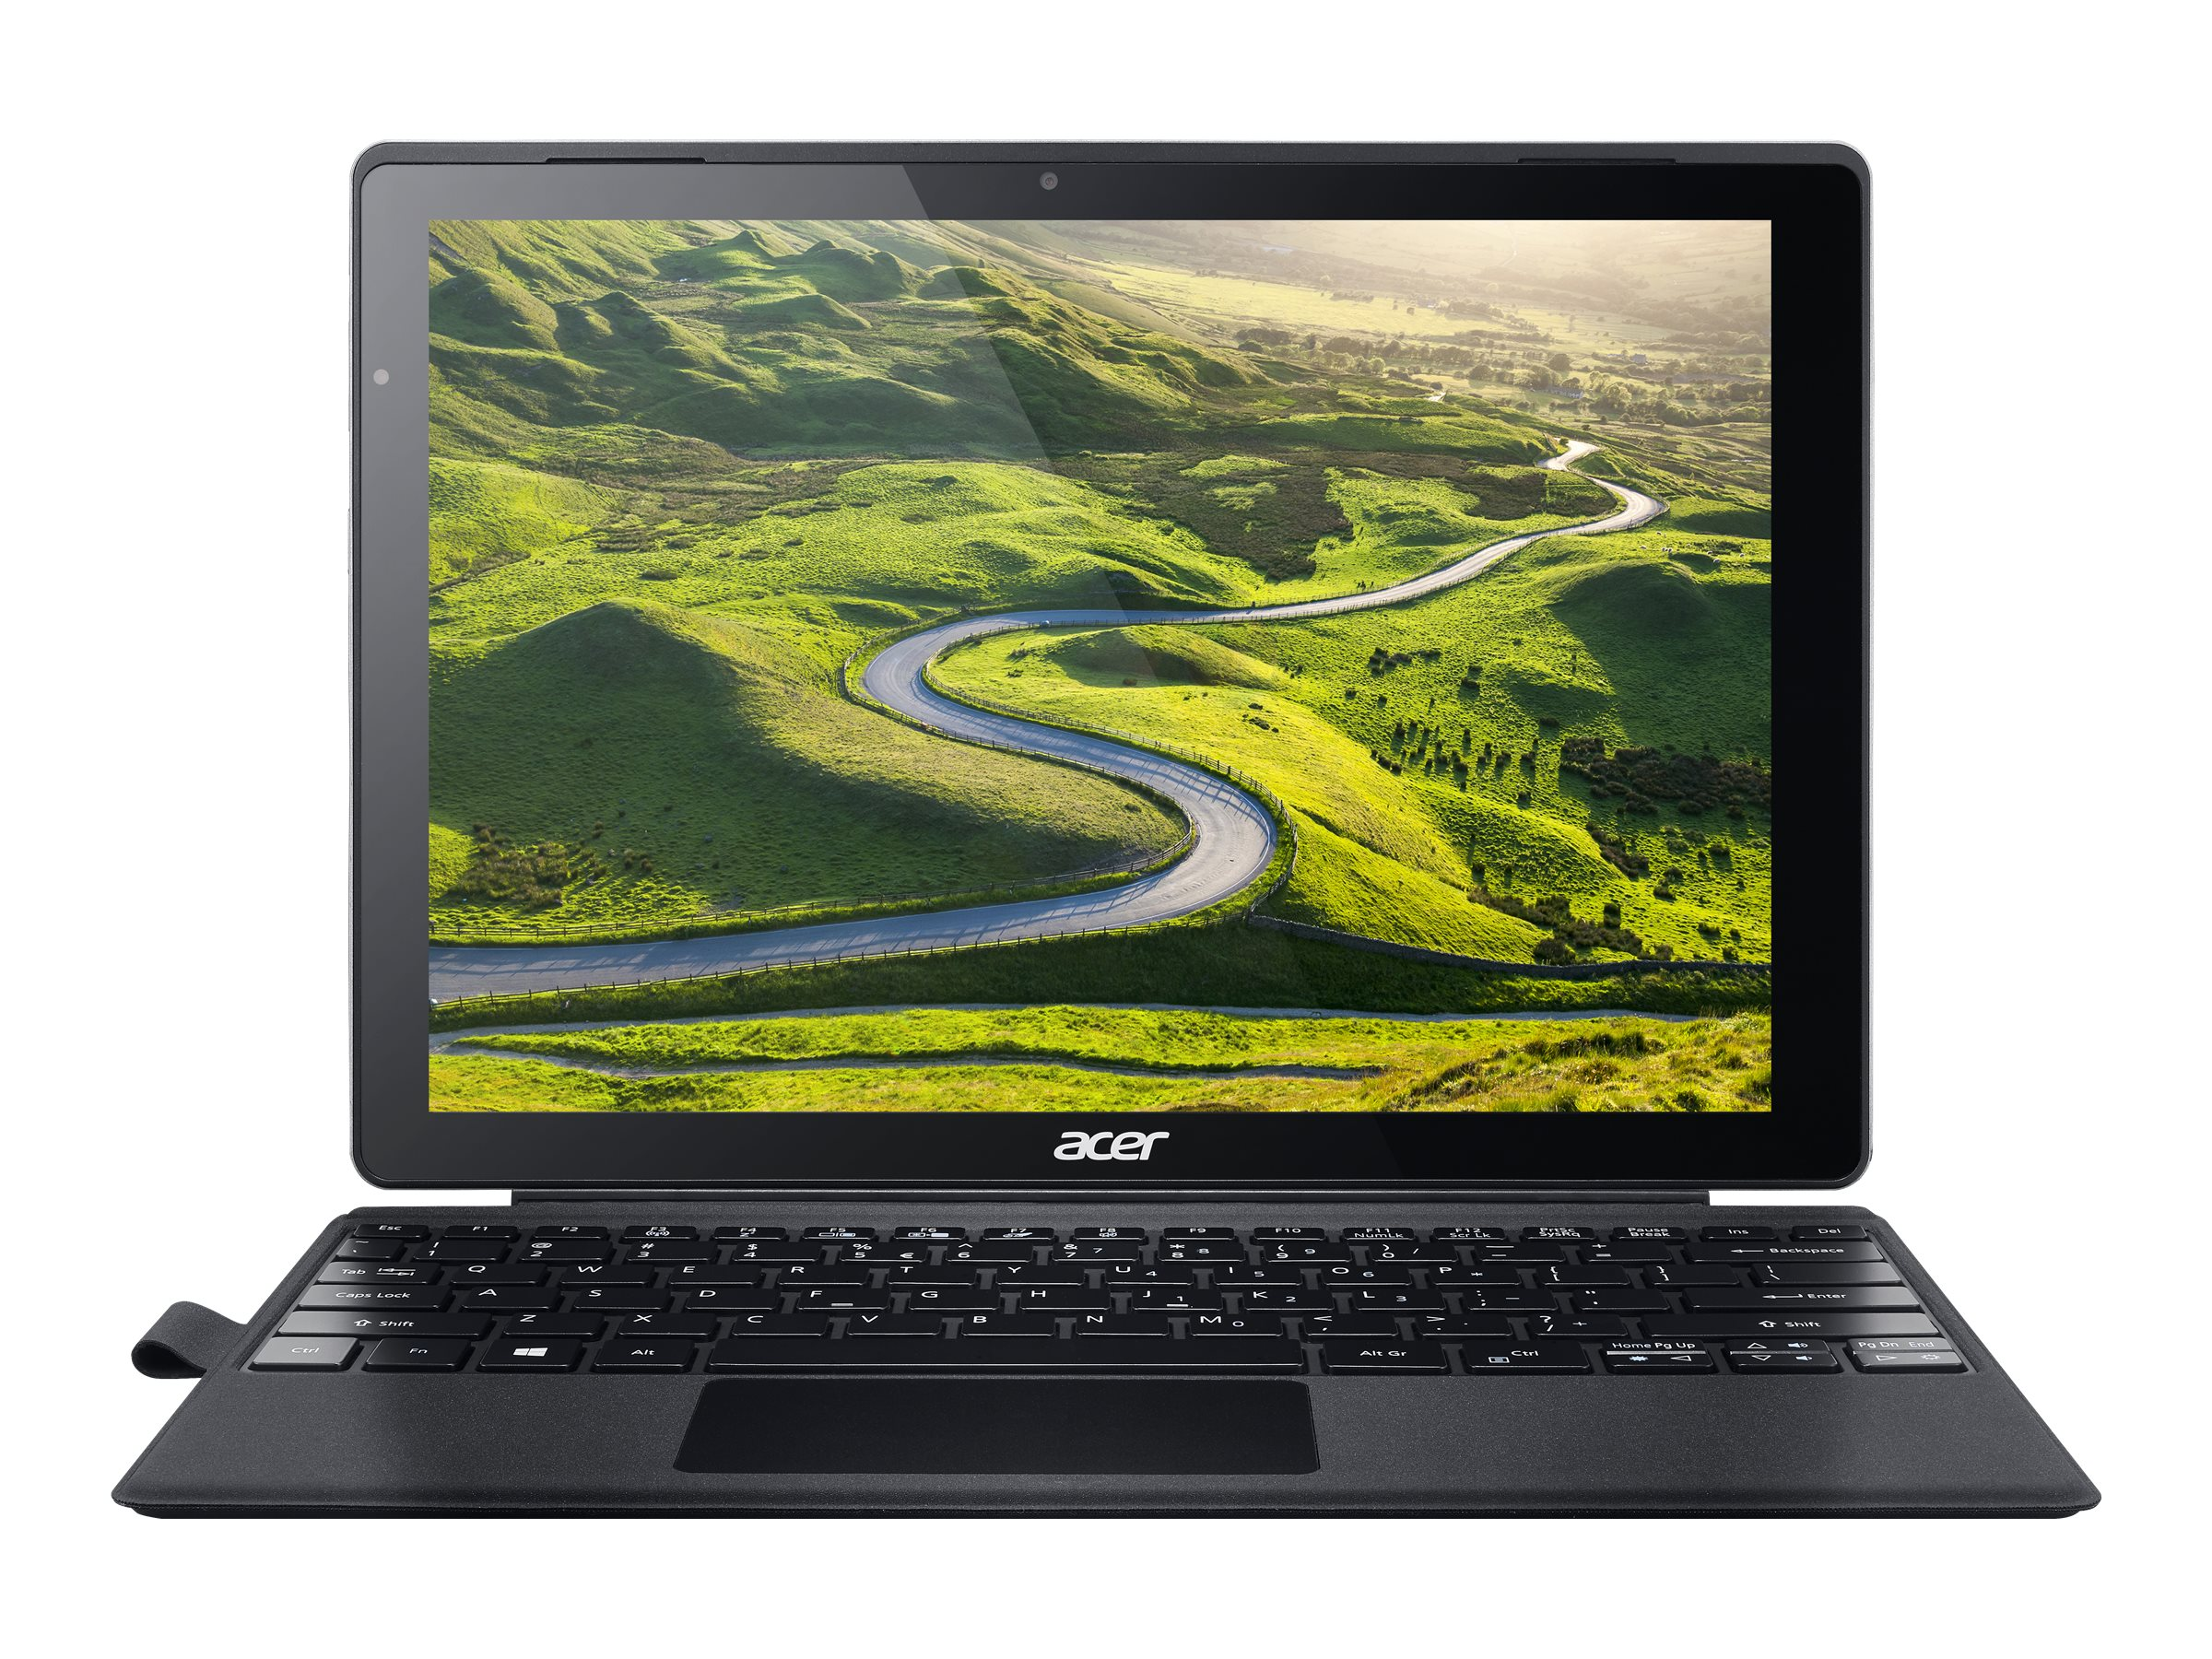 Acer Aspire Switch Alpha 12 SA5-271-56FD 2.3GHz processor Windows 10 Home Edition 64-bit, NT.GDQAA.003